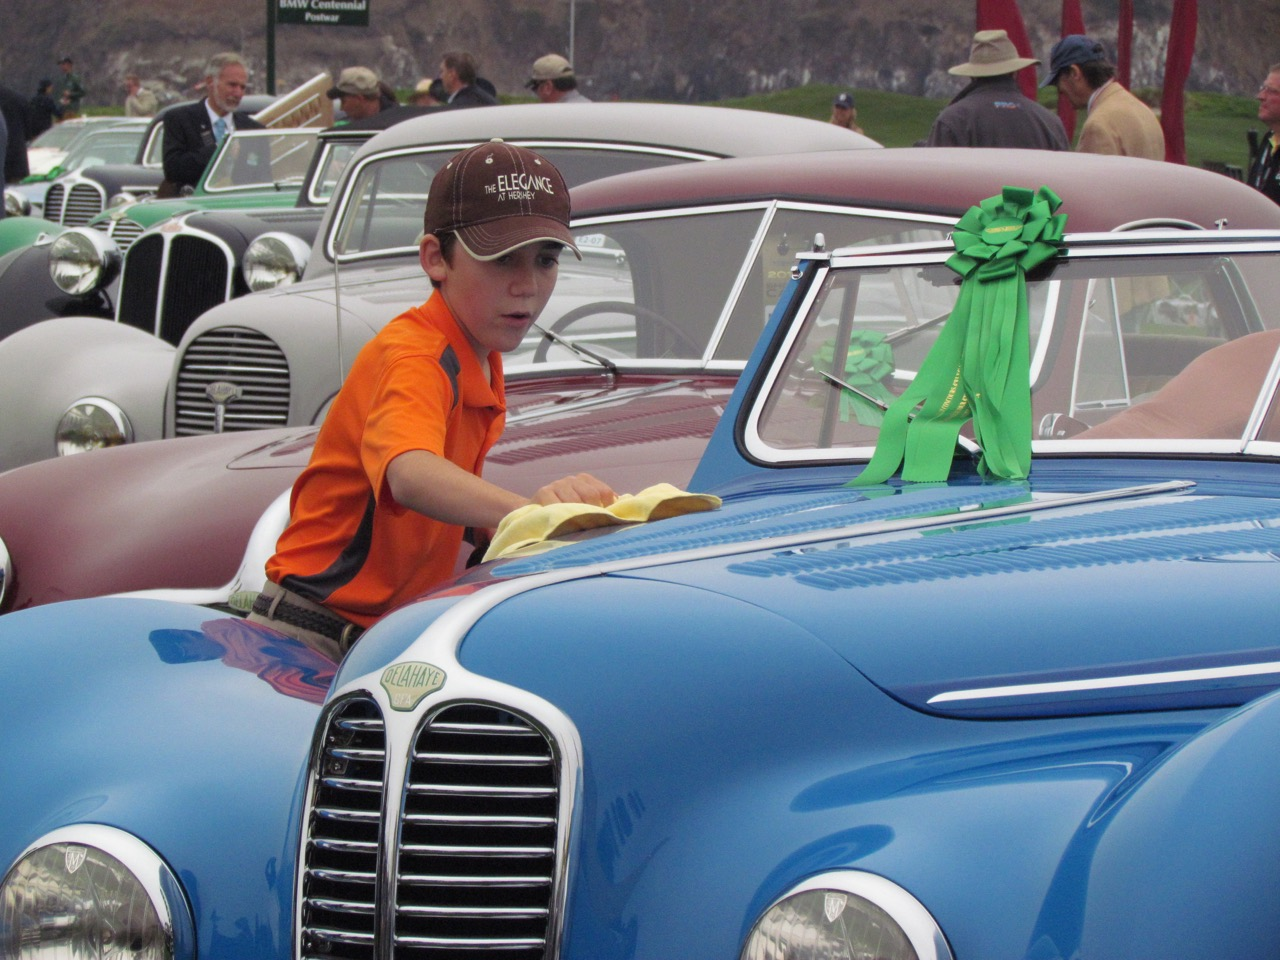 11-year-old Ezra Gould hopes grandfather's 1947 Delahaye will be his someday